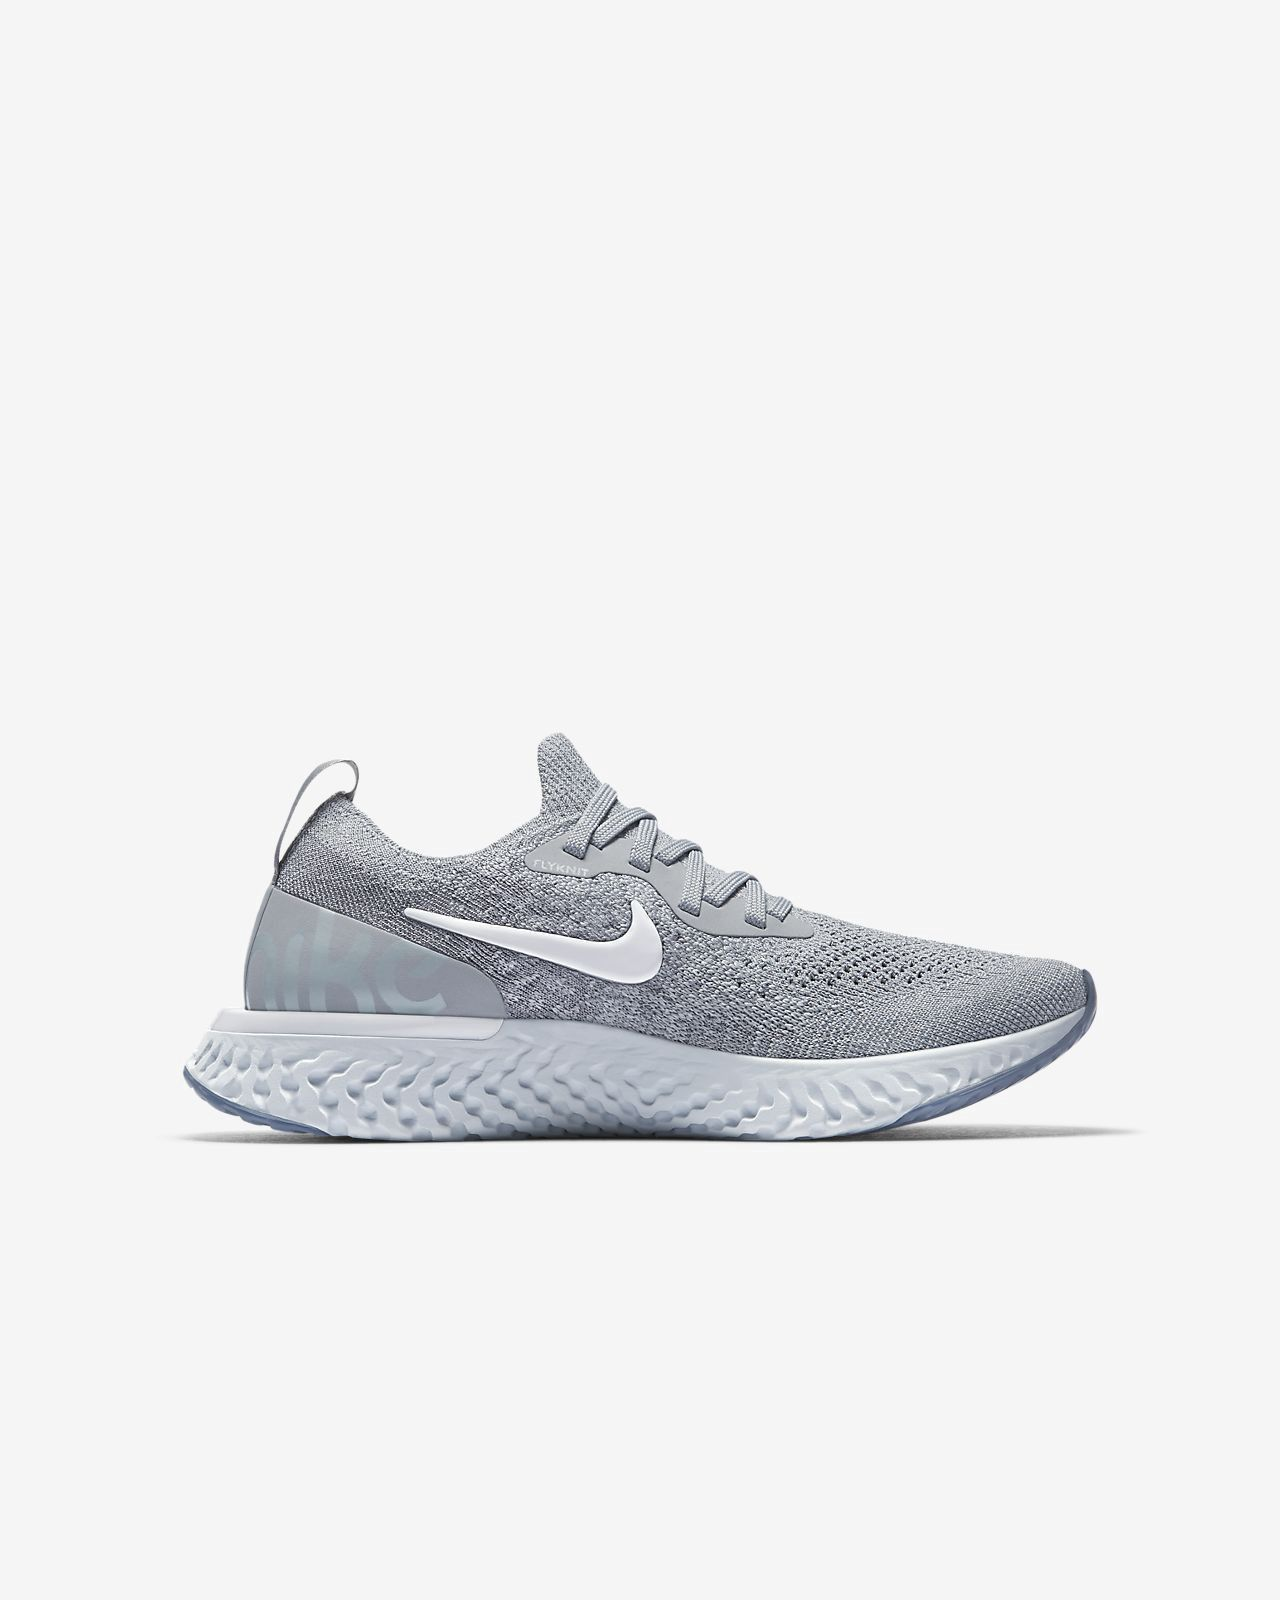 3a8df9b928 Nike Epic React Flyknit Big Kids' Running Shoe - 3.5Y   Products ...